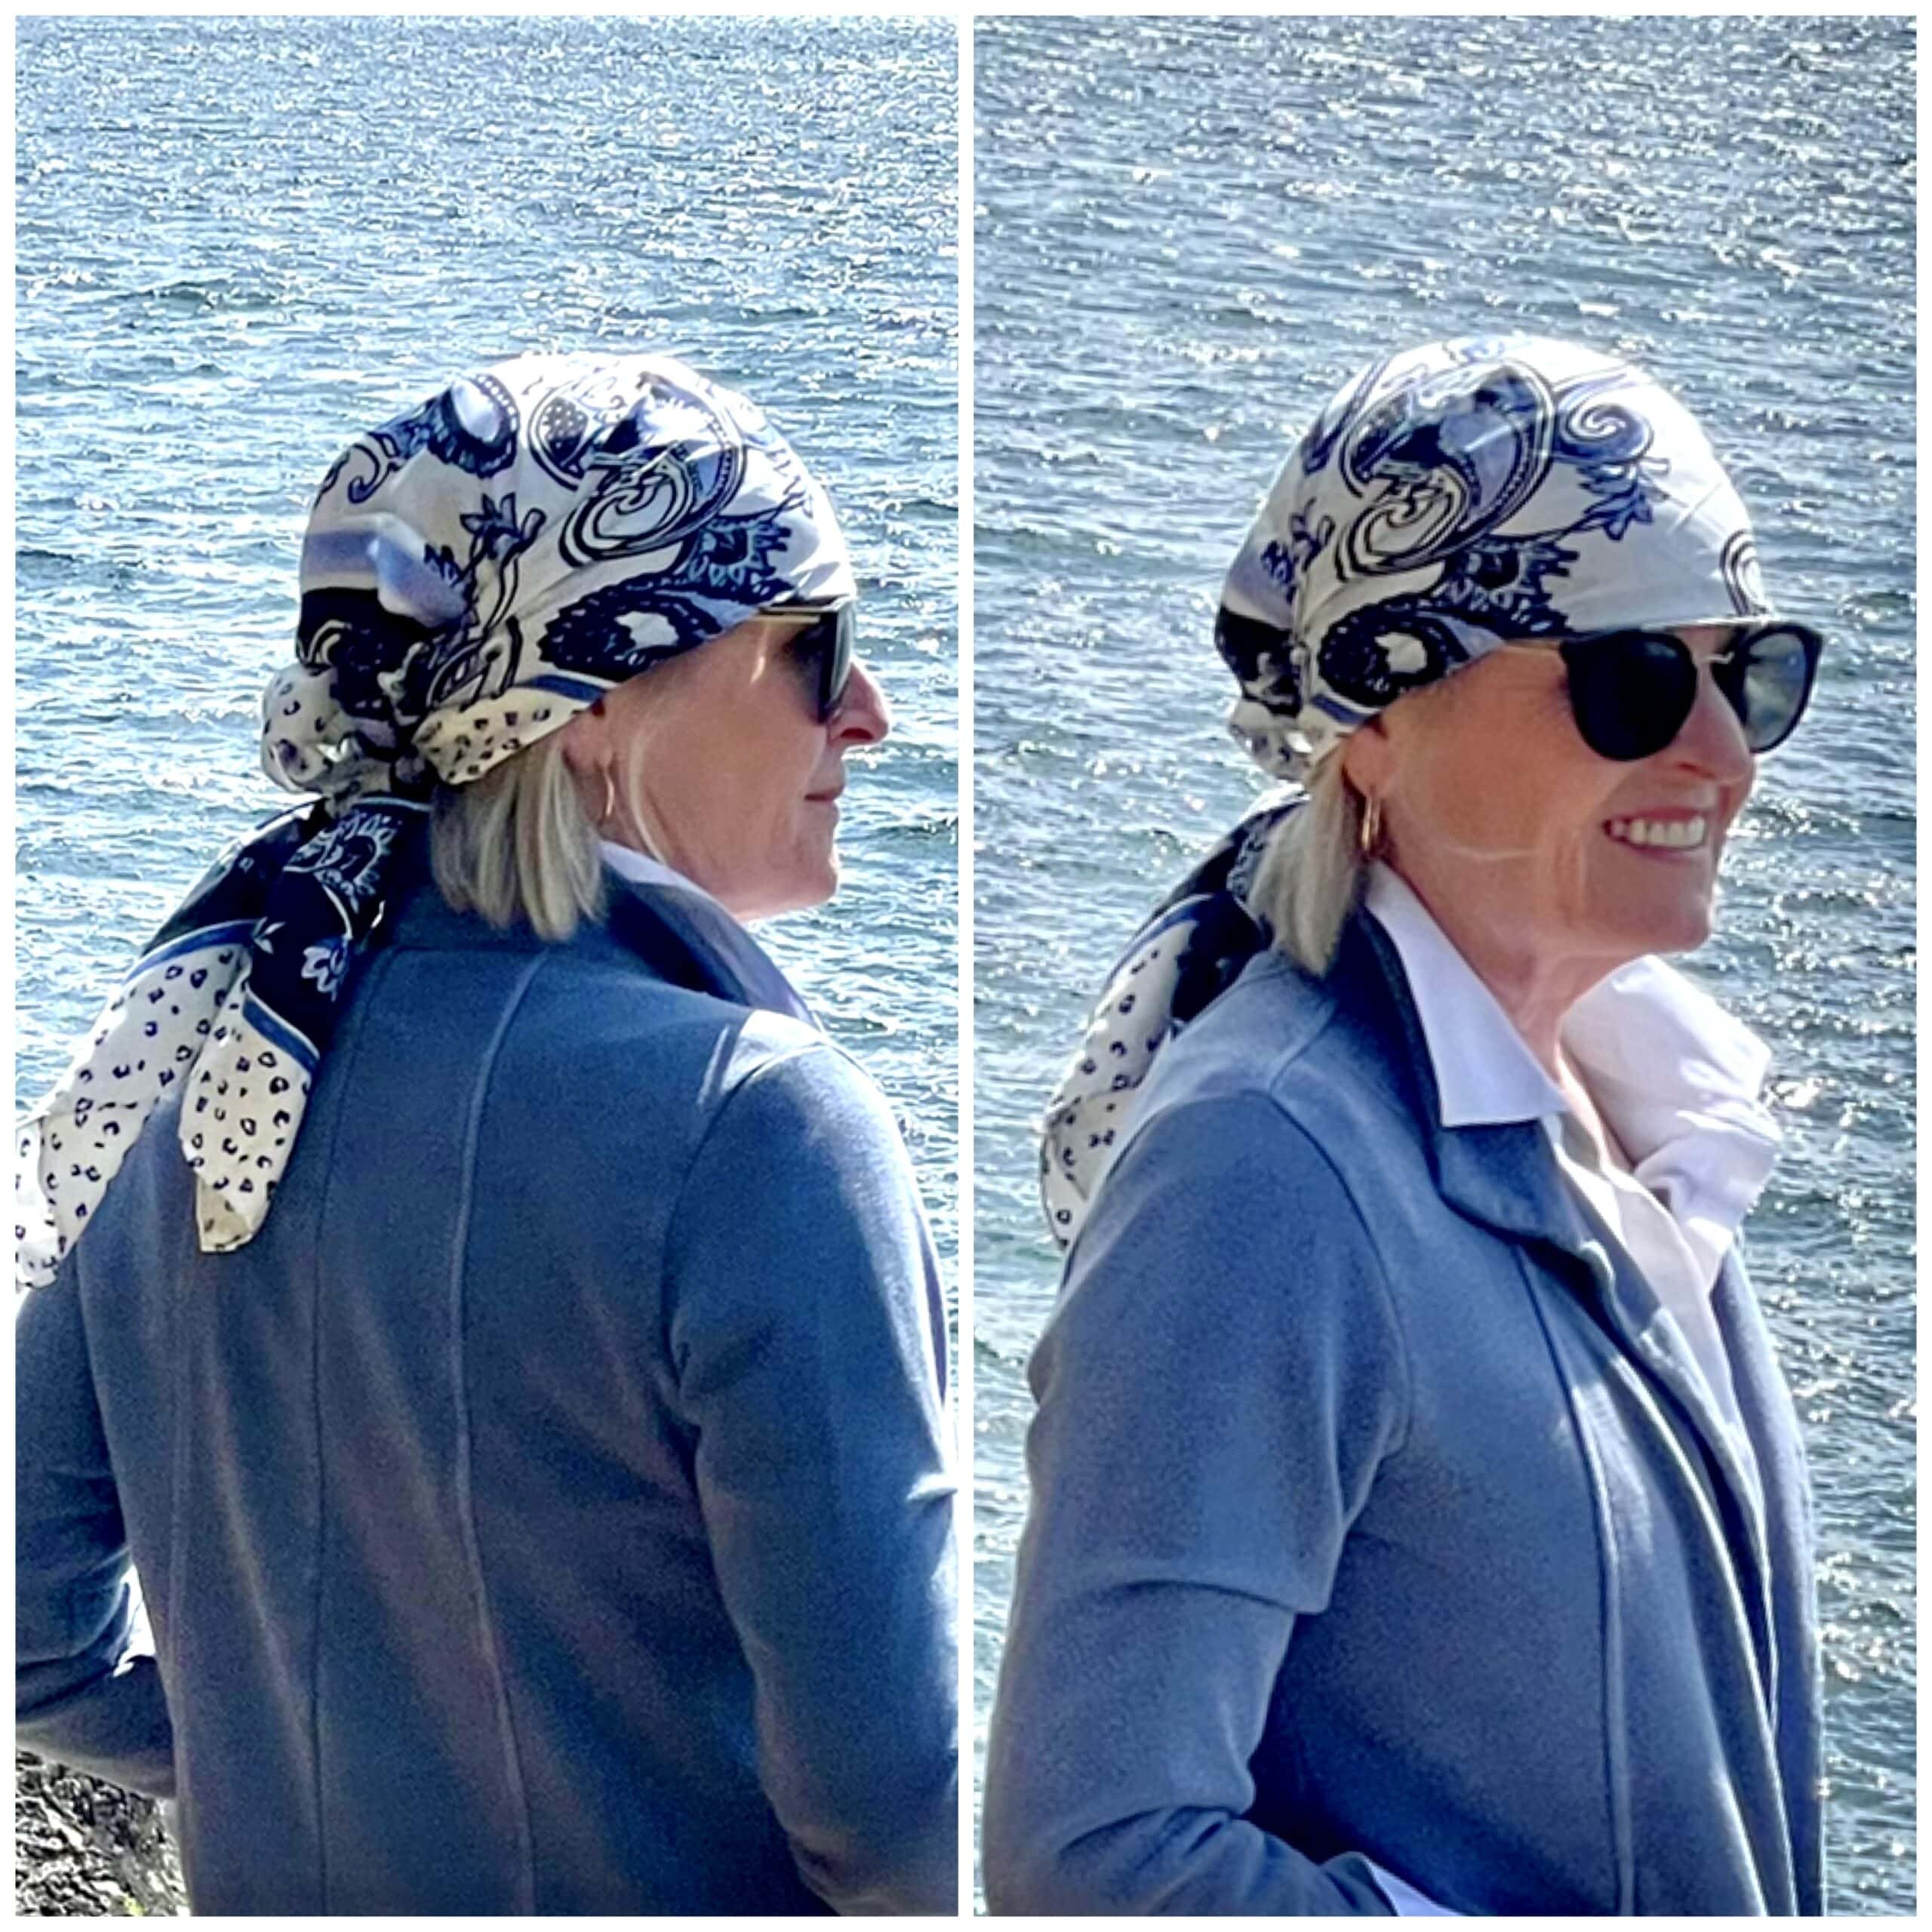 over 50 woman showing front and back of blue and white head scarf wrap while standing on the coastline